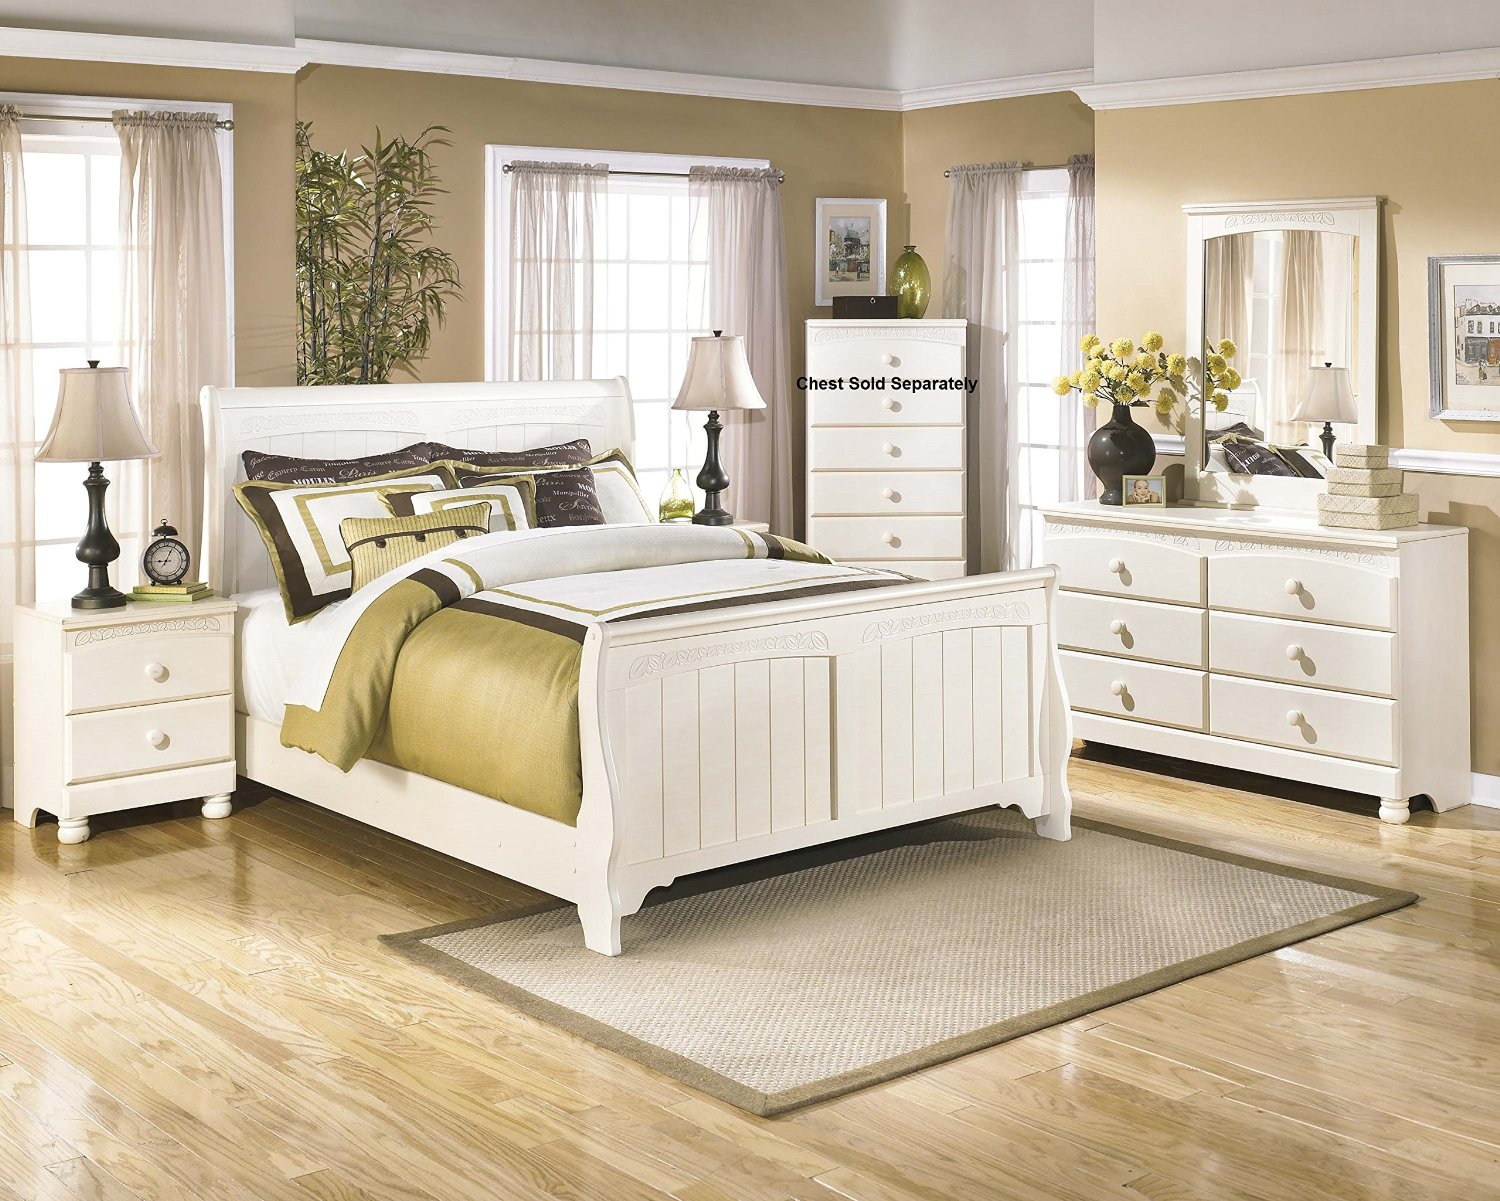 town retreat bedroom kitchenagenda home plans cottage set design com chair furniture for key house teenage